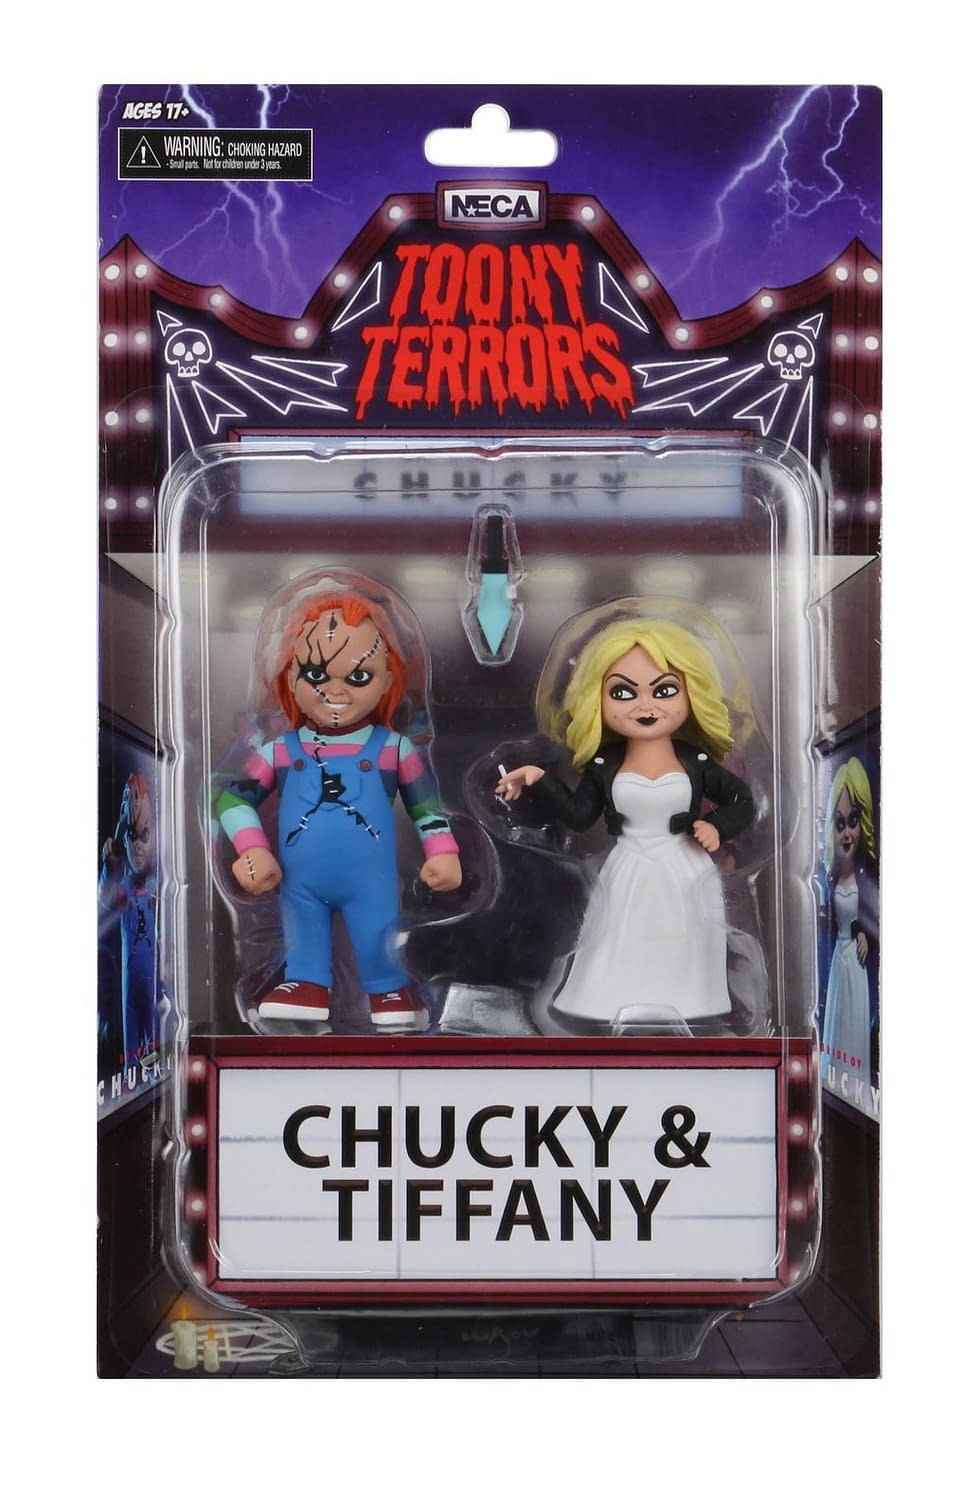 Chucky and Tiffany Tooney Terrors Final Product Revealed from NECA